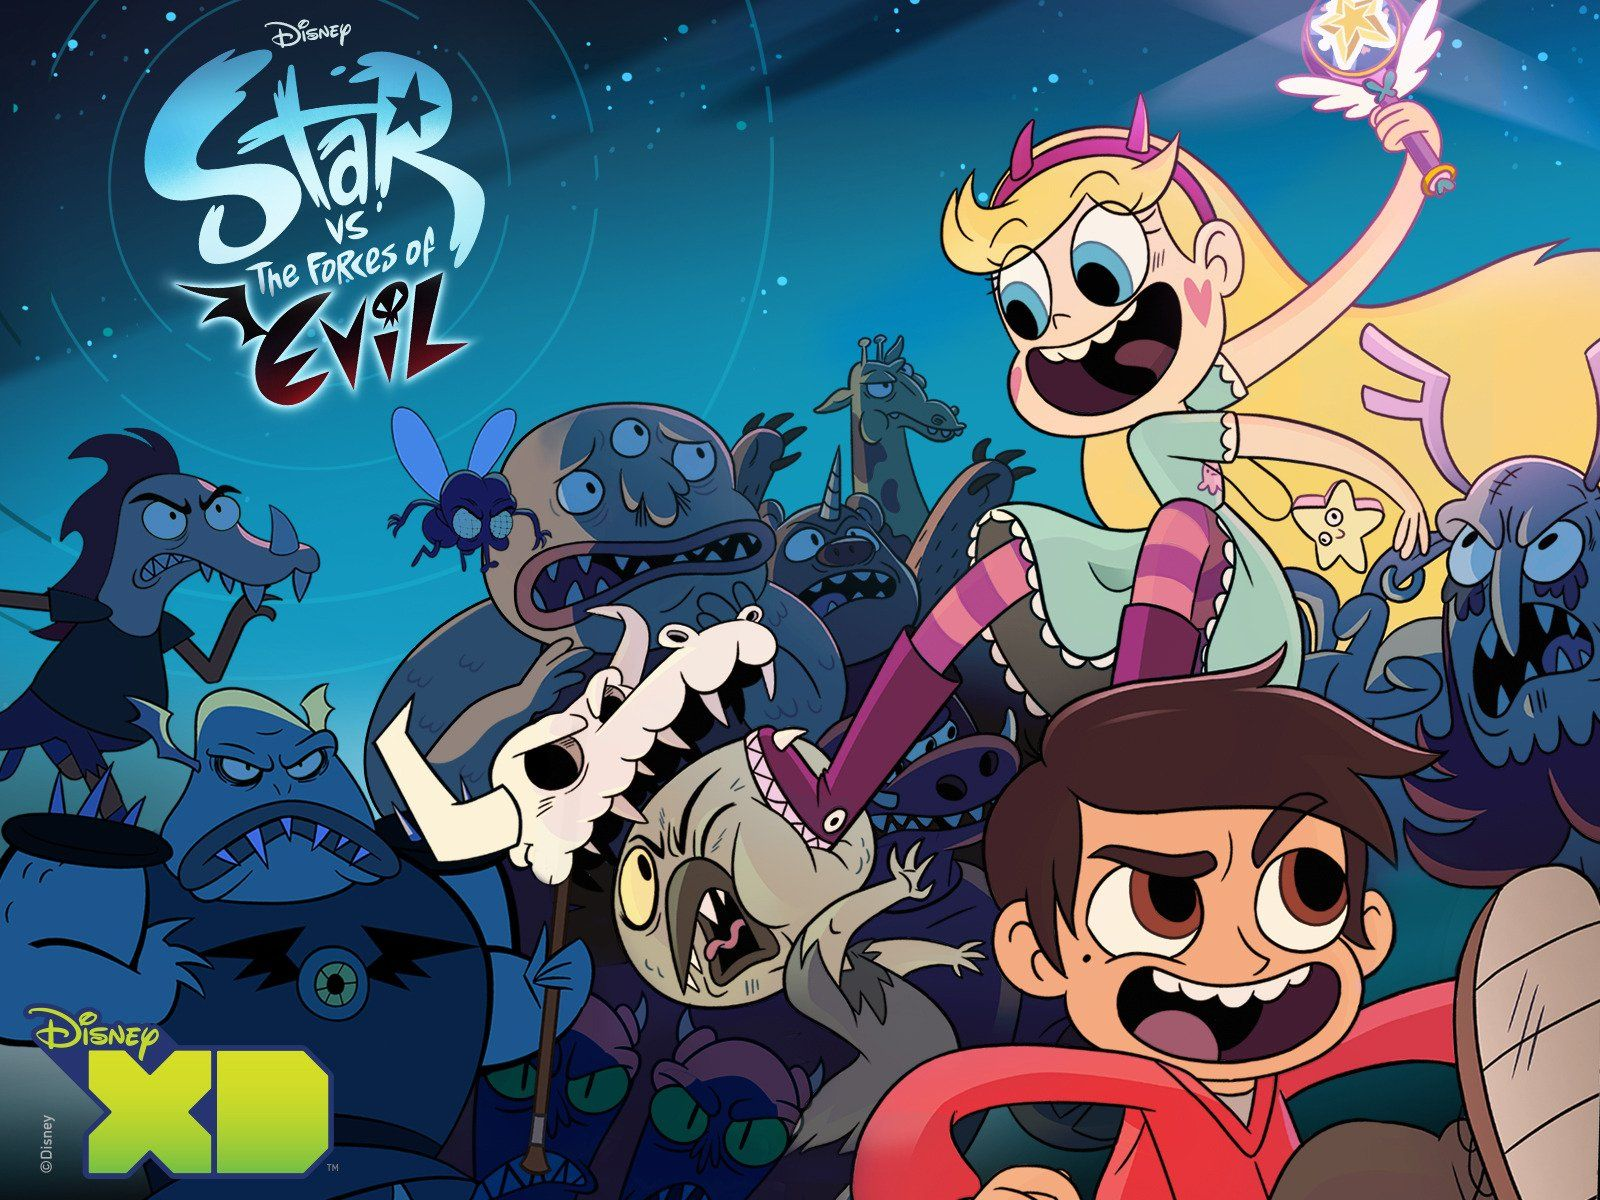 Star vs the Forces of Evil Wallpapers - Top Free Star vs ...